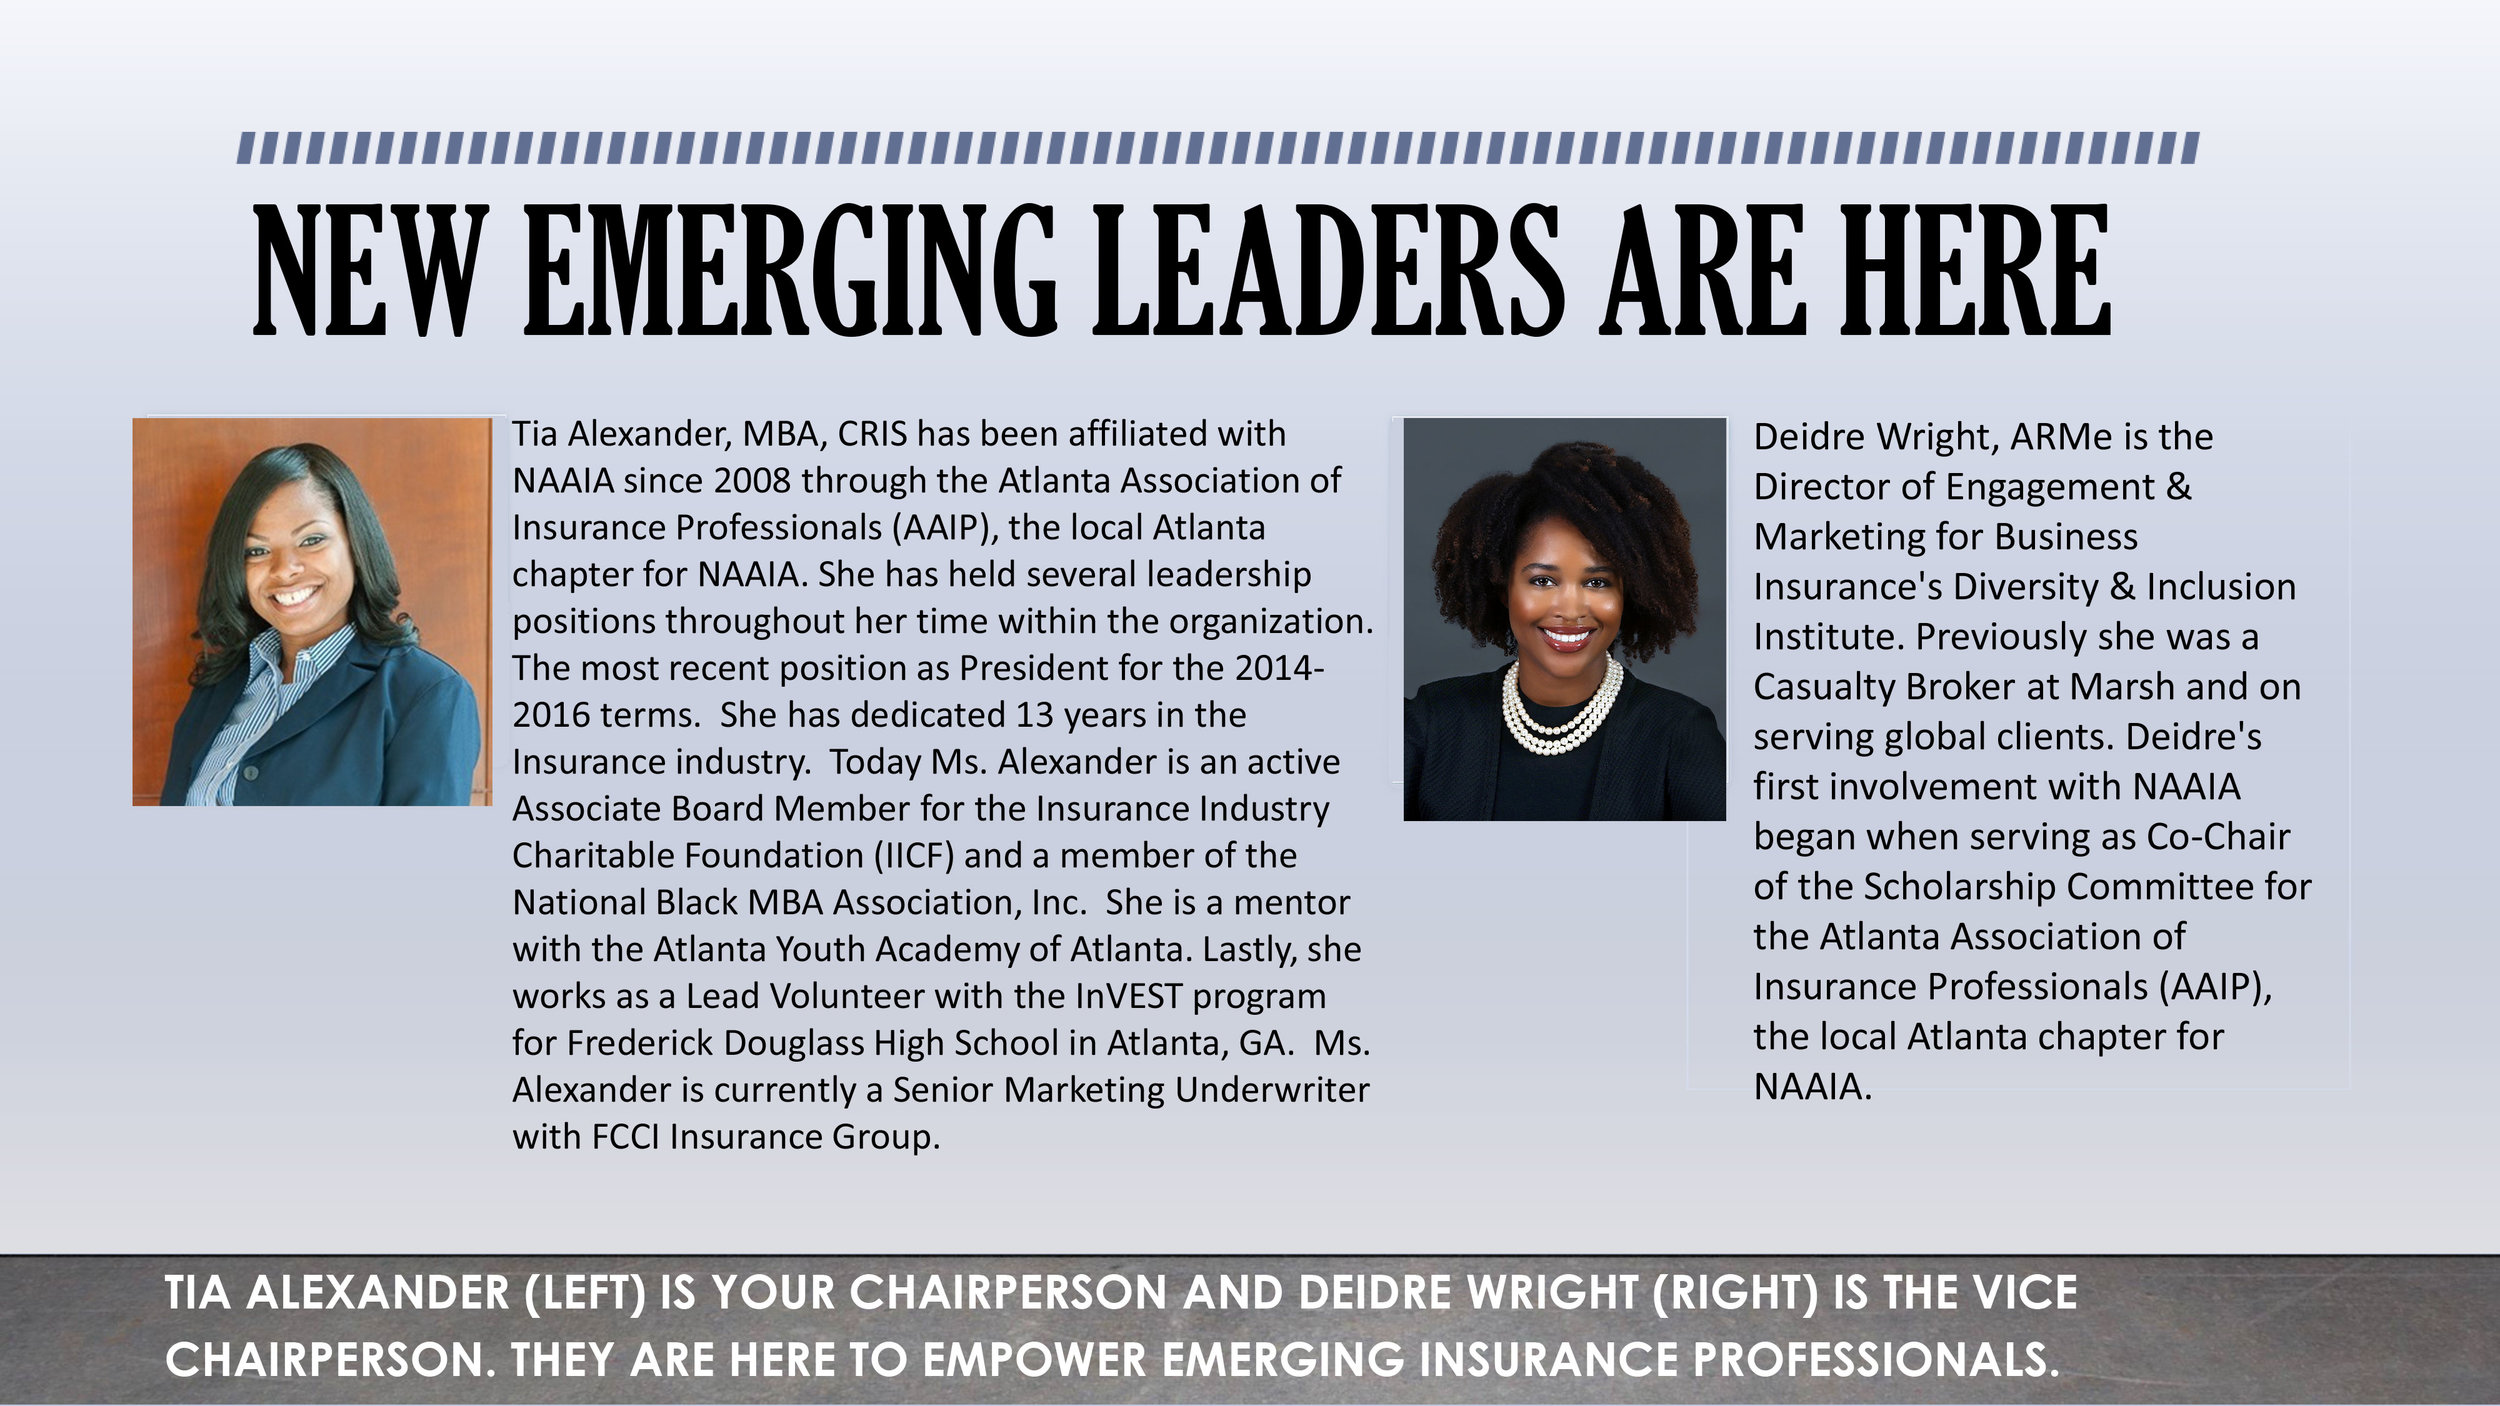 NEW-EMERGING-LEADERS-ARE-HERE--EBLAST_6.27.jpg